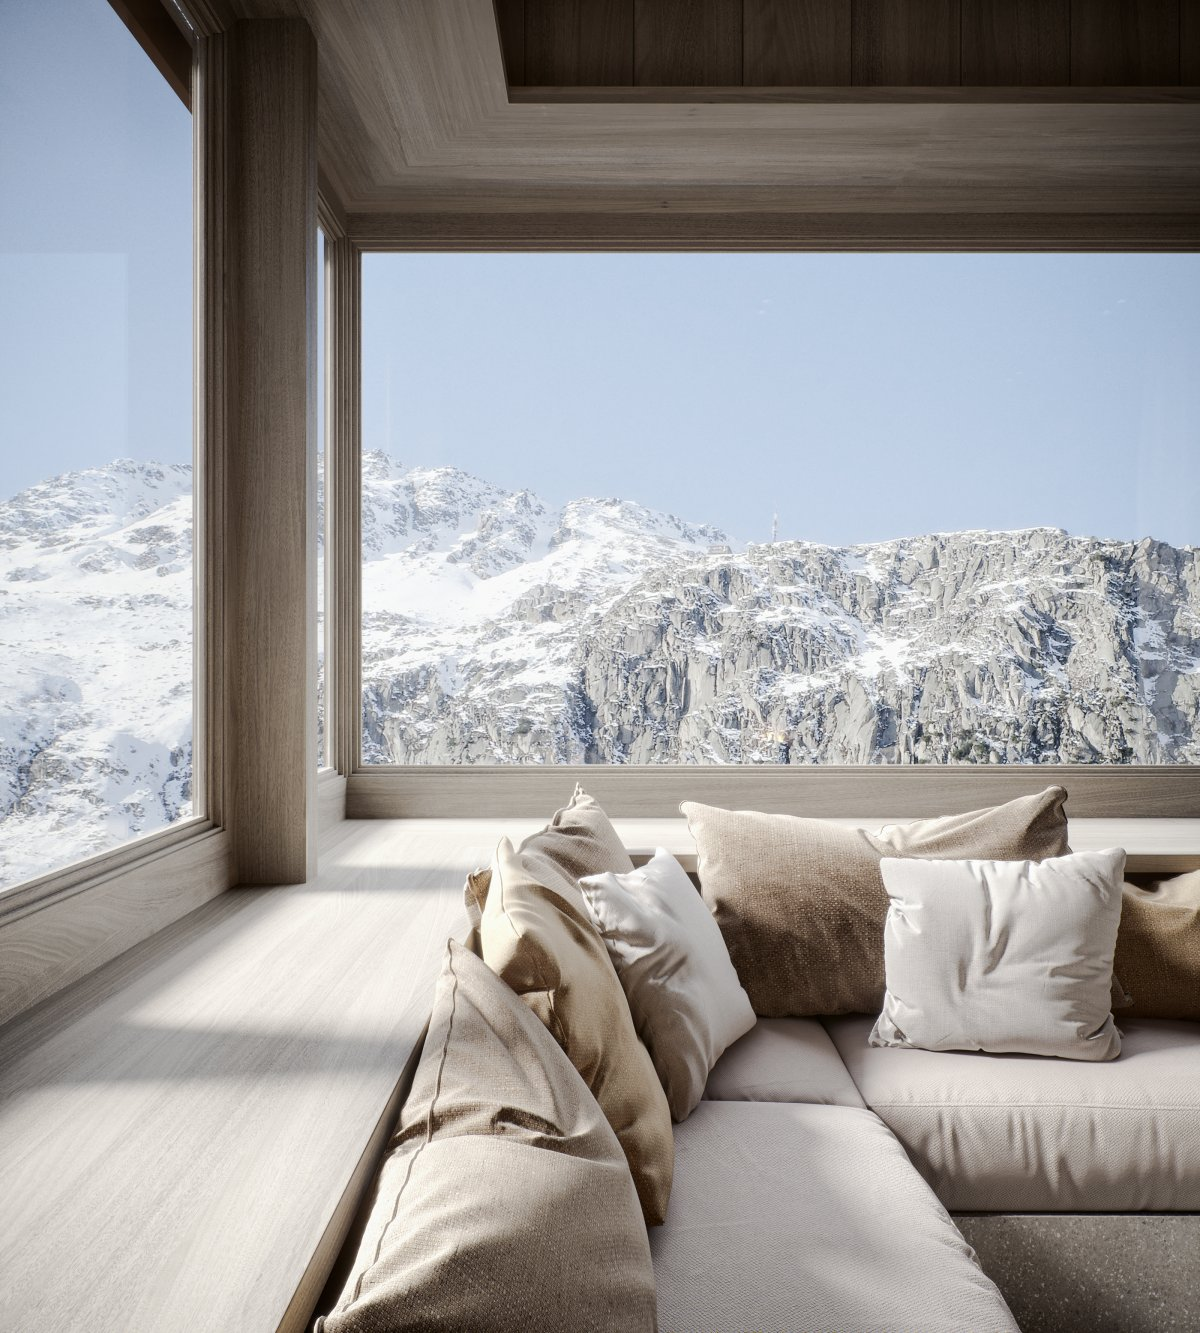 Haus Alma in Swiss Alps Designed By Render Vision